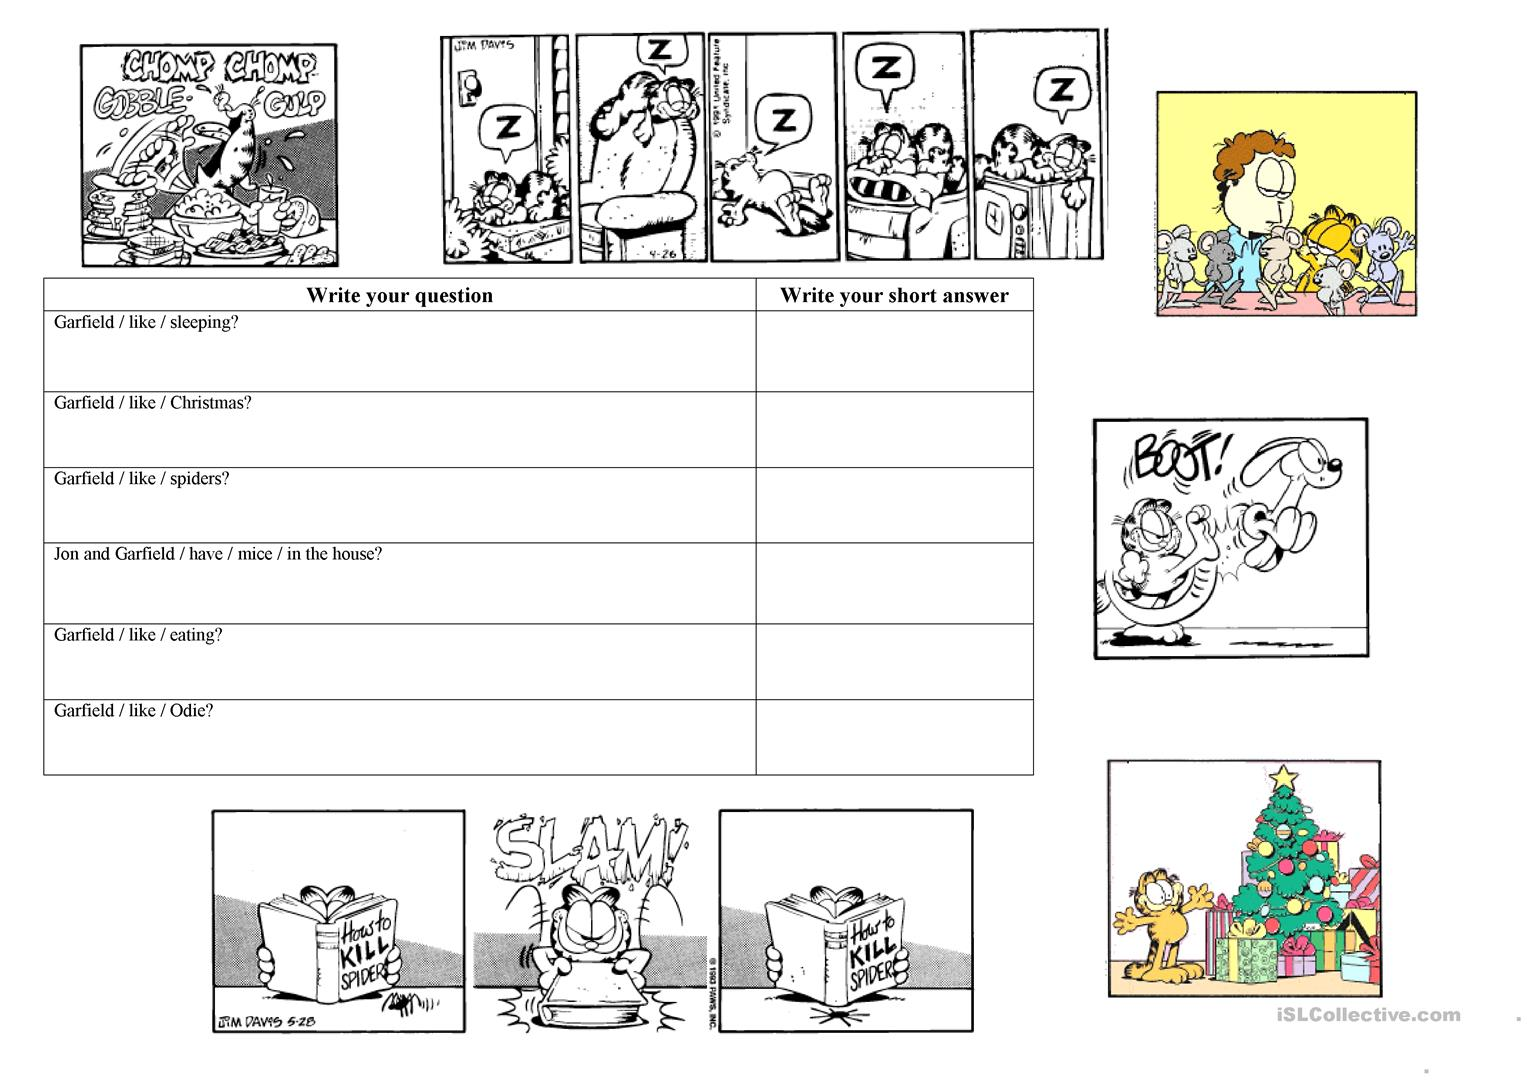 Garfield Present Simple Questions Worksheet